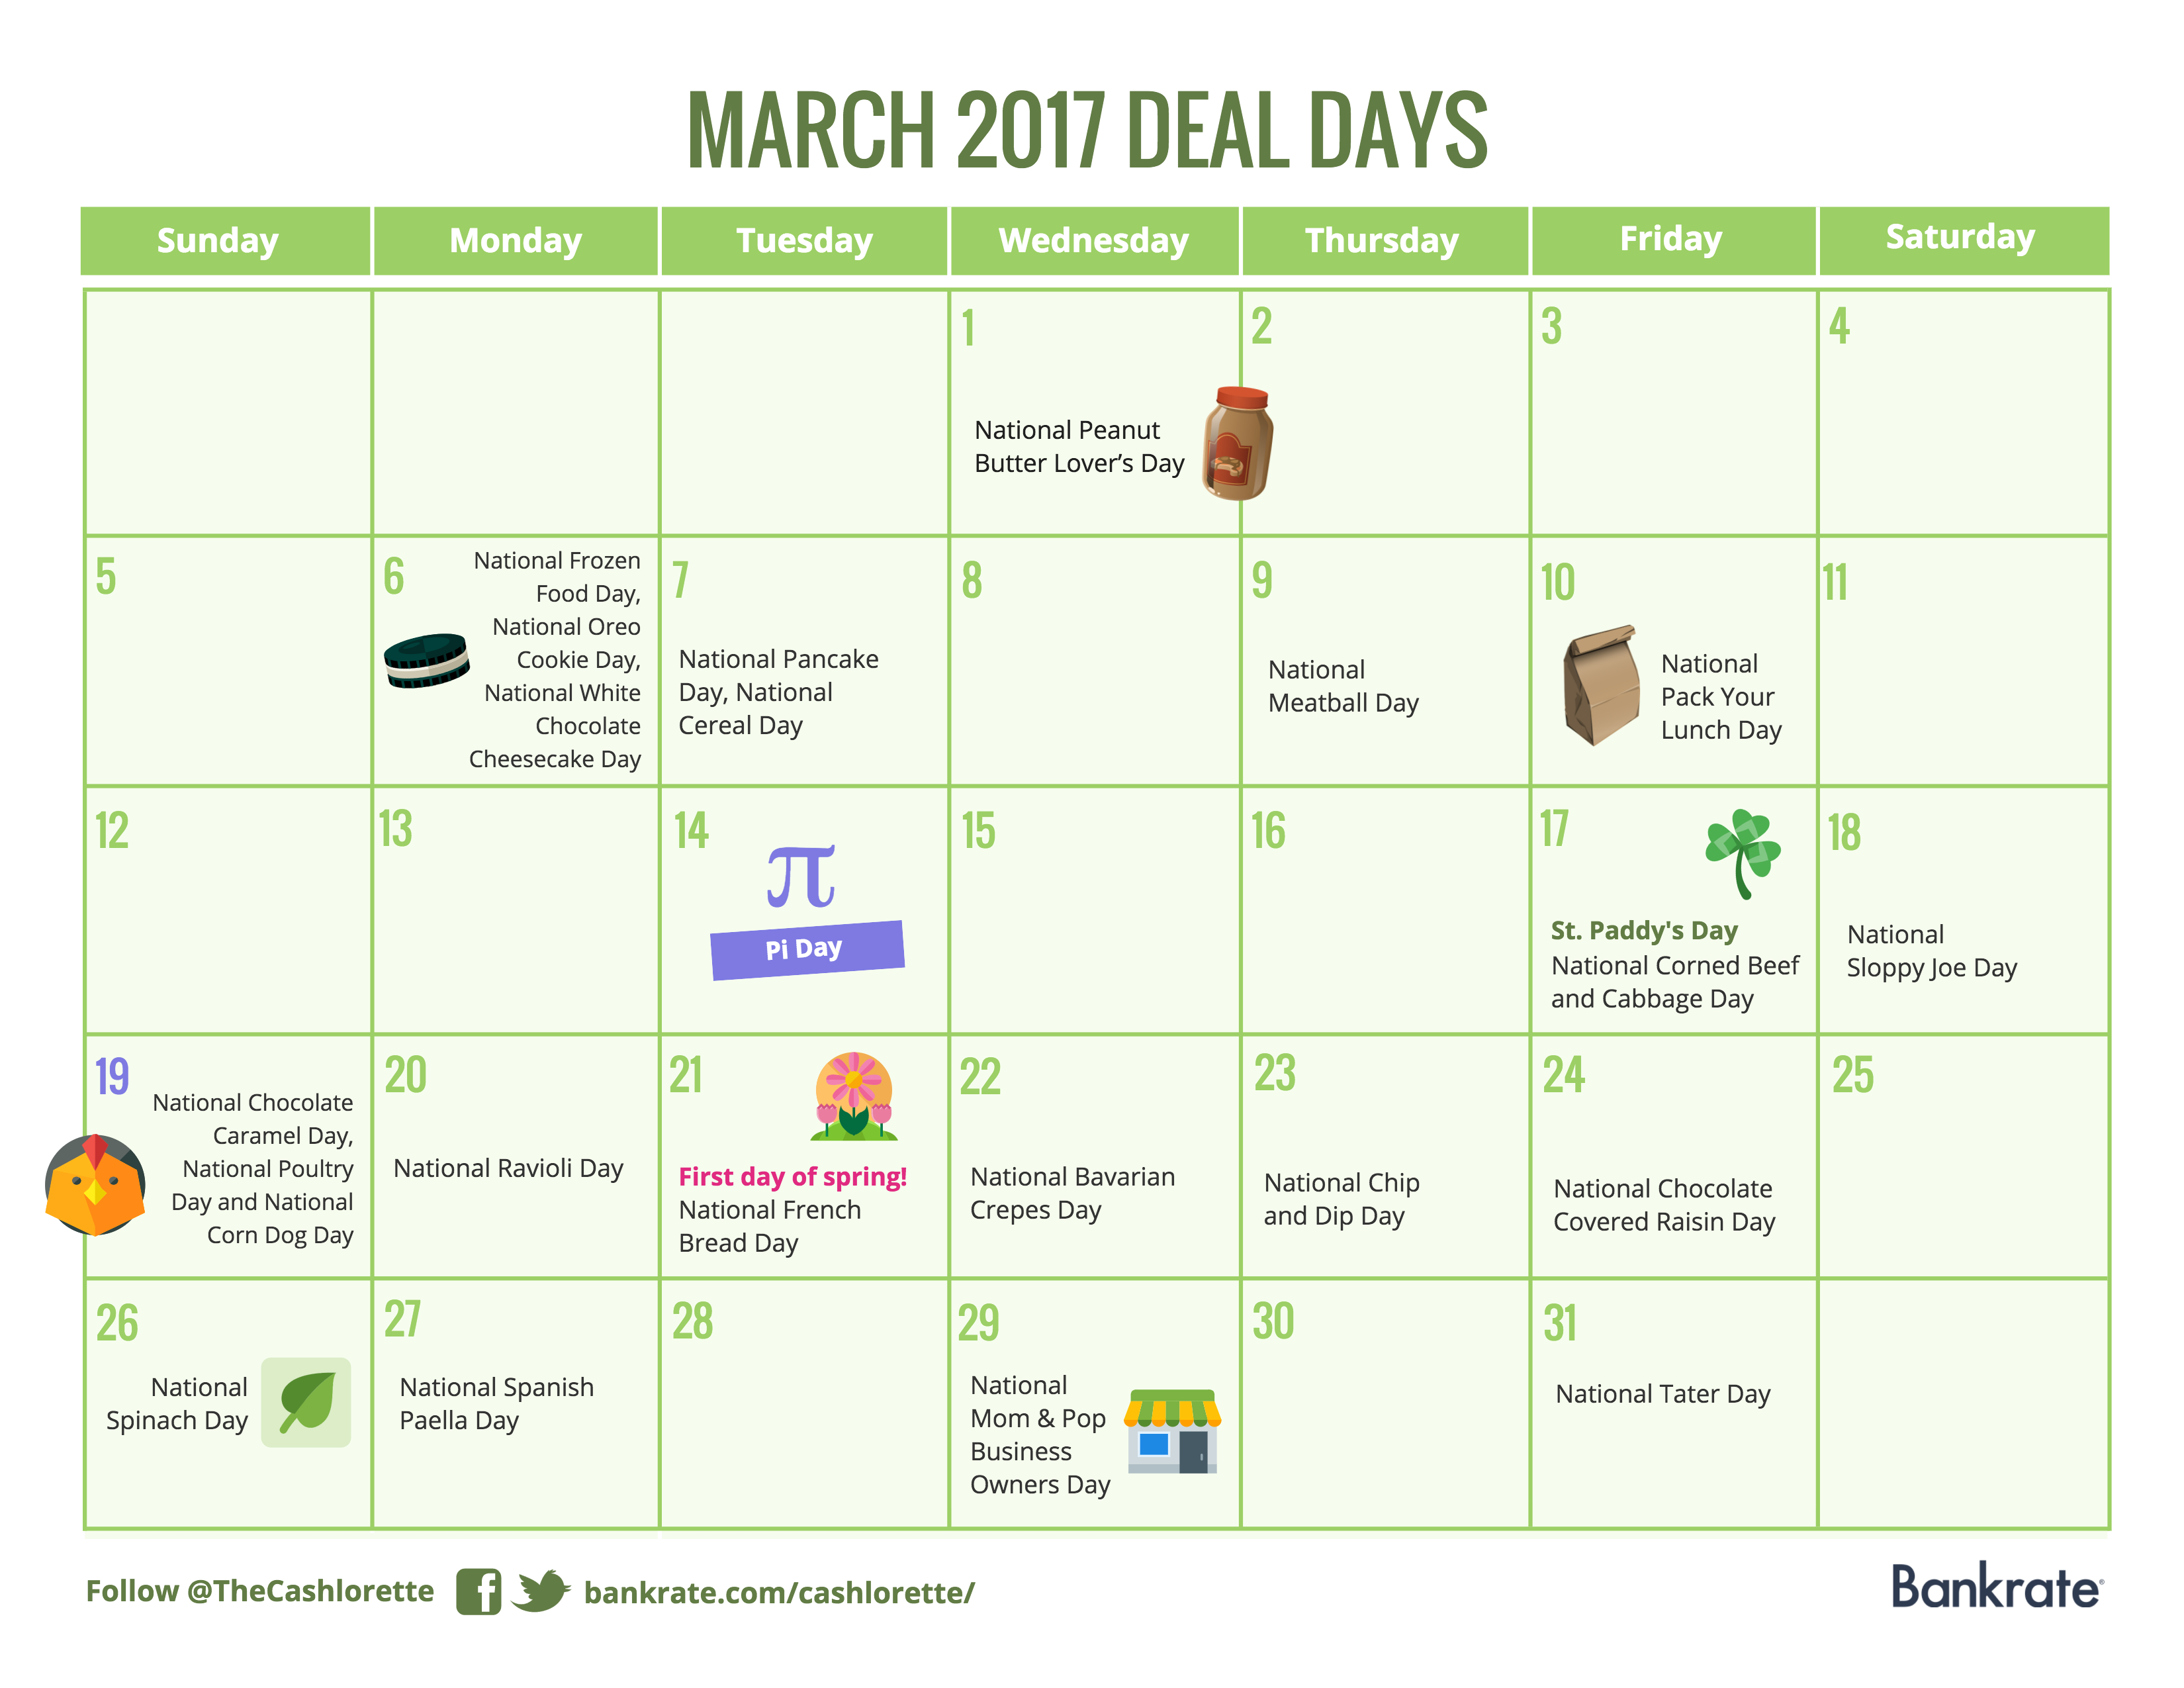 March 2017 Deal Days | Bankrate.com